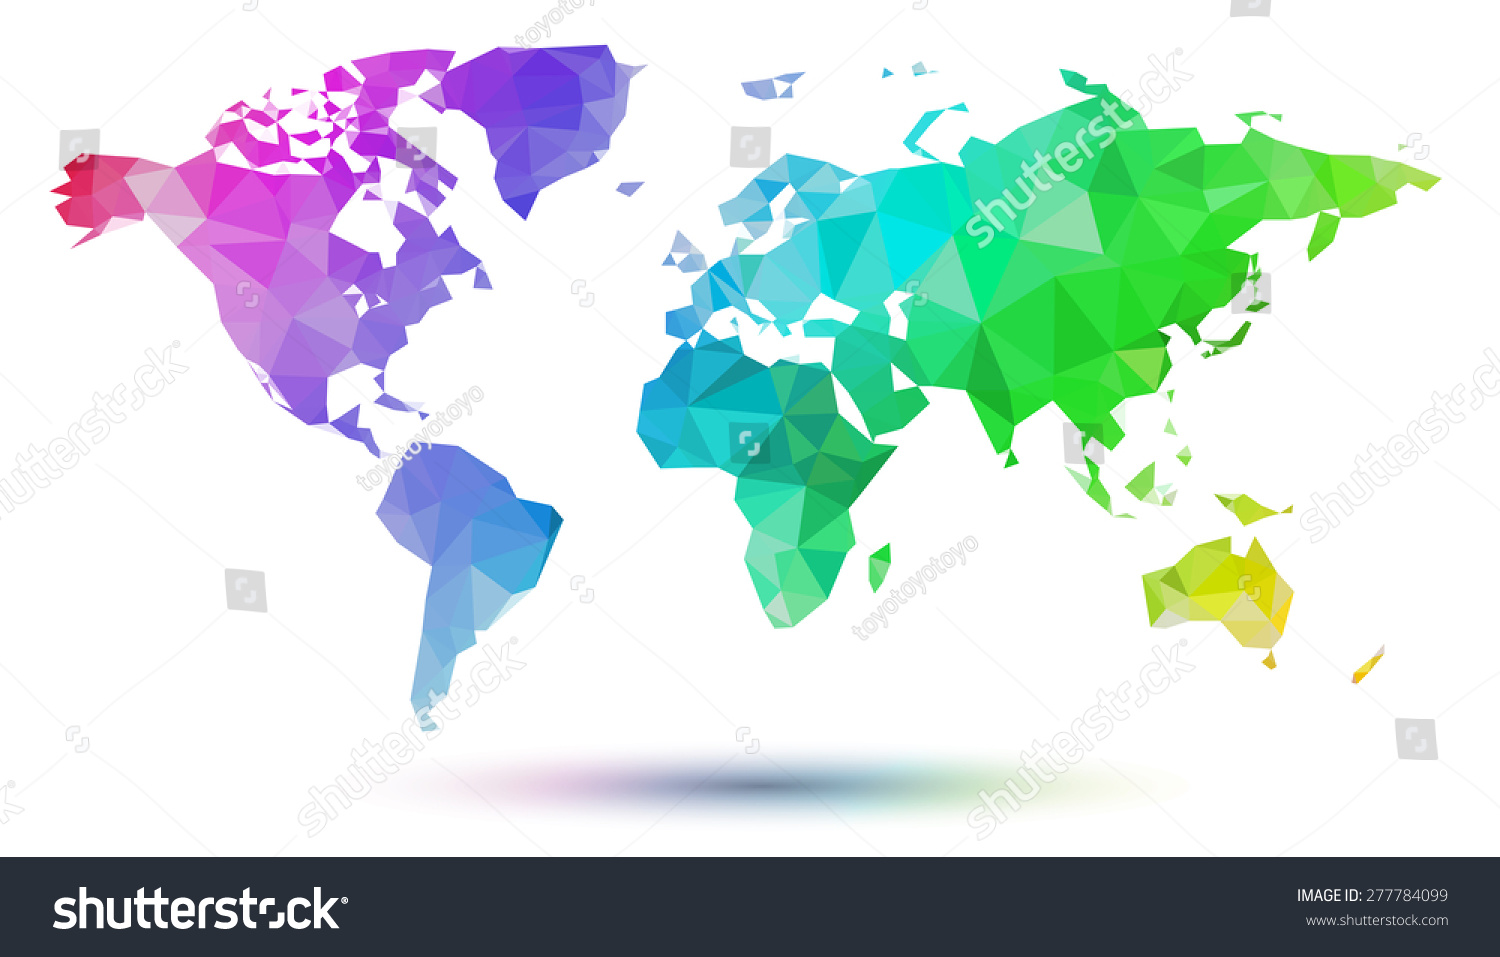 Cubism Rainbow World Map Stock Vector Royalty Free 277784099